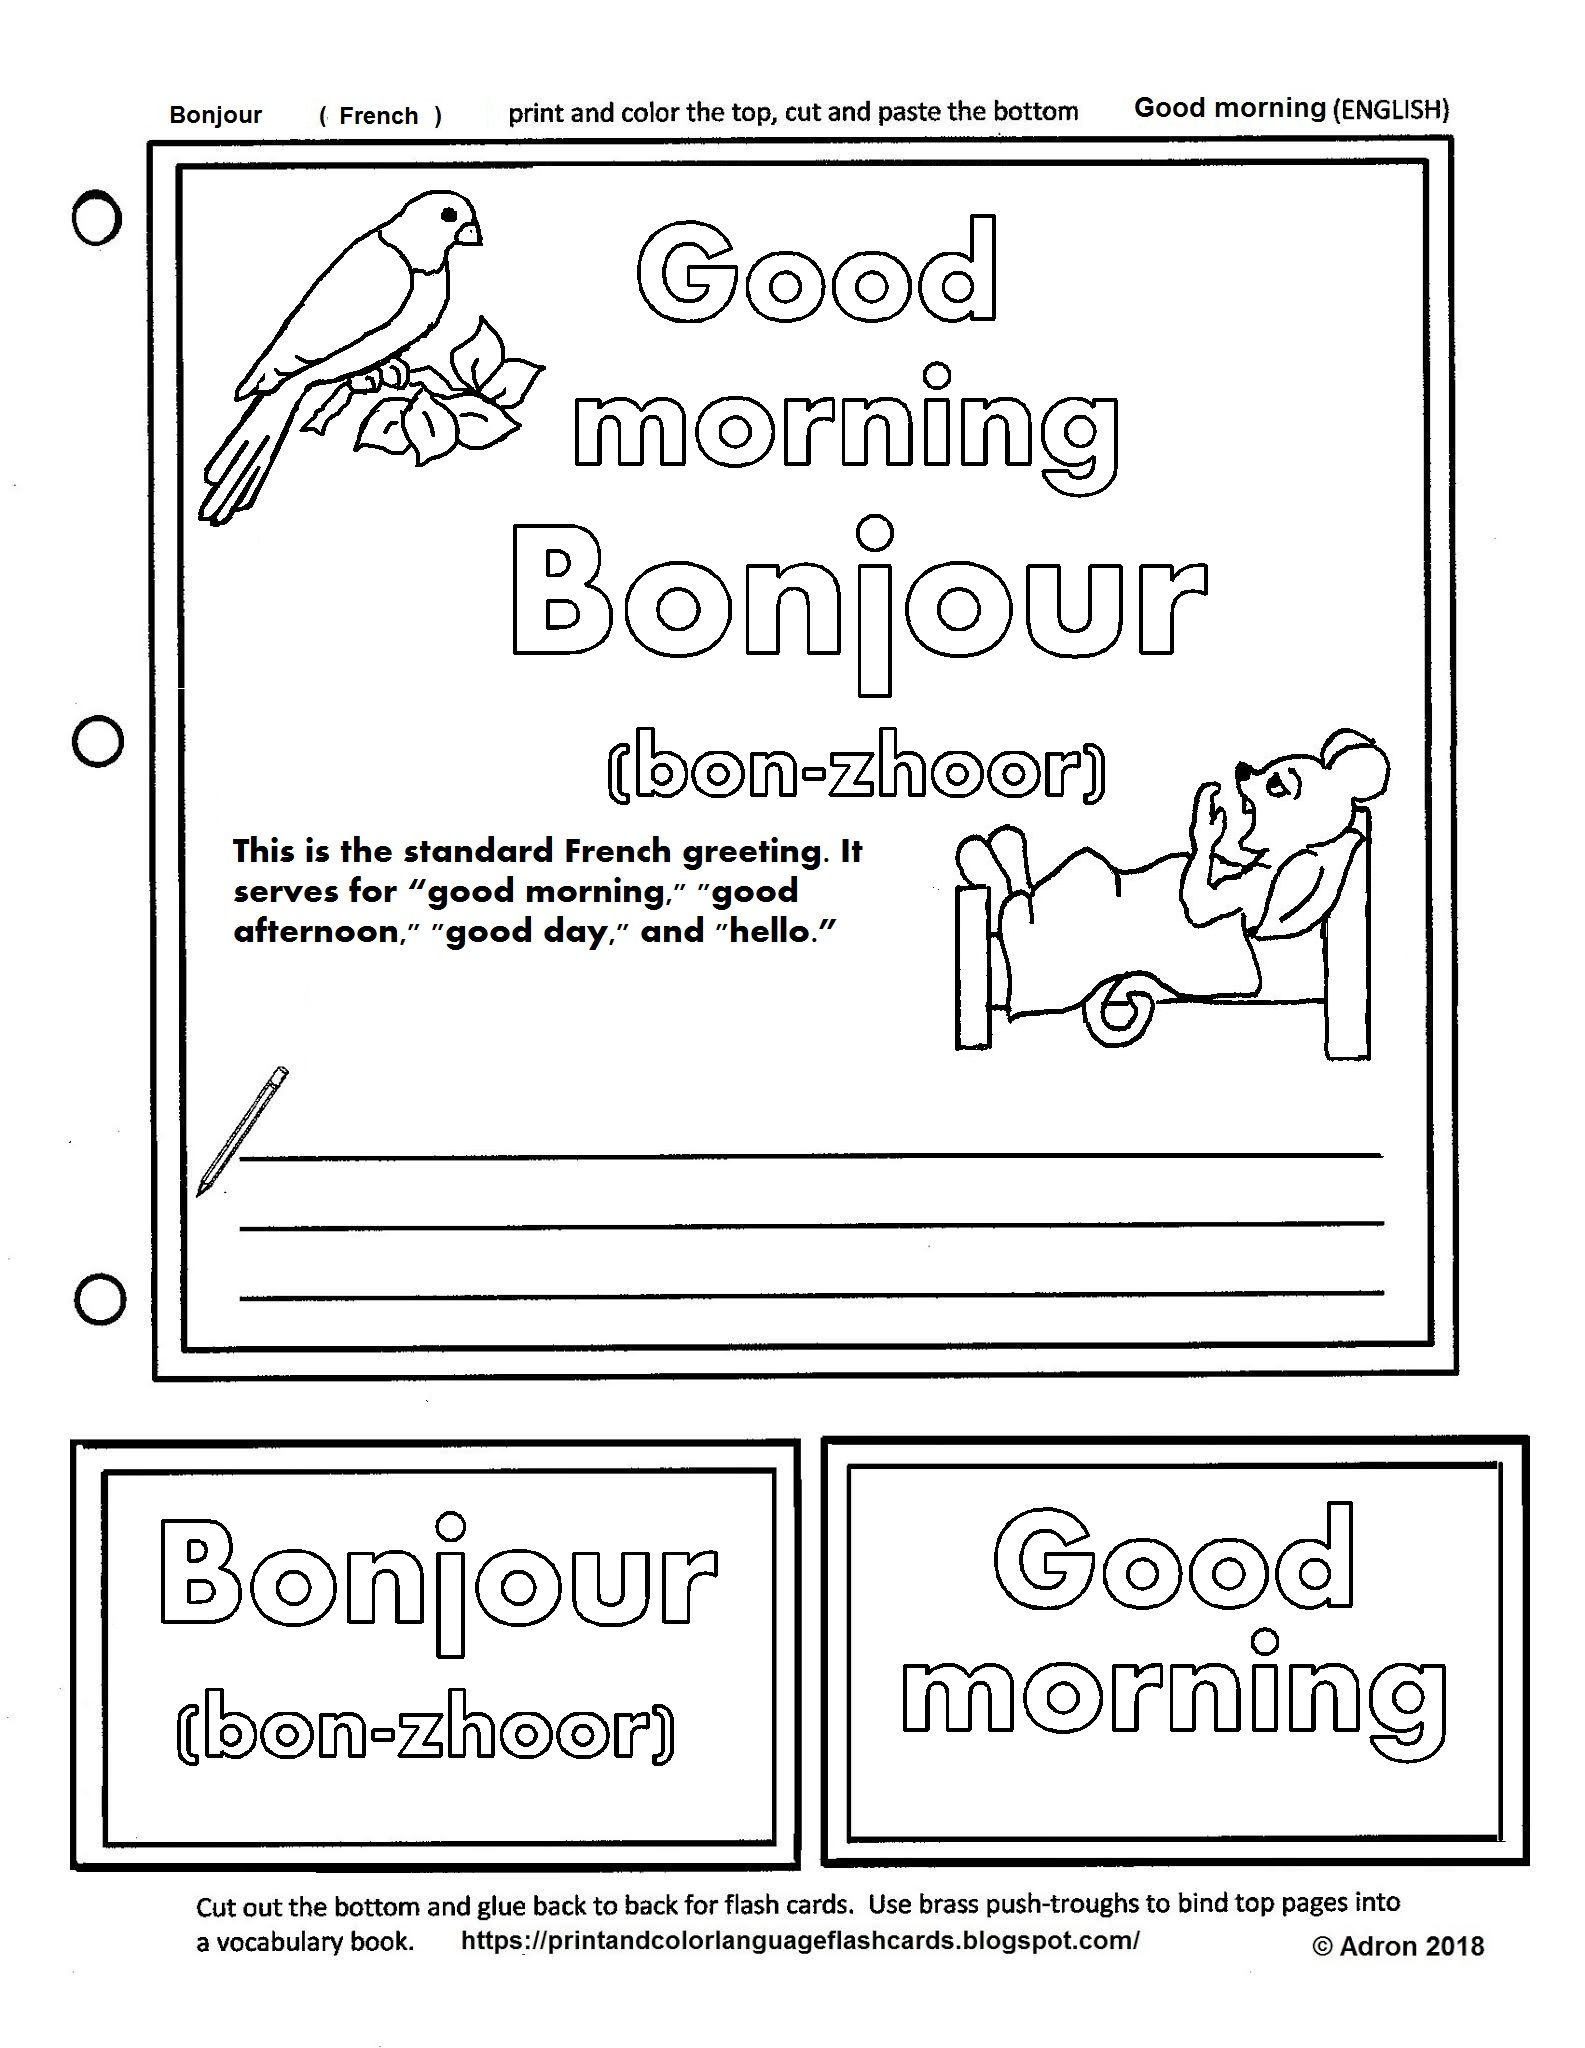 Print And Color Language Flash Card For The French Word